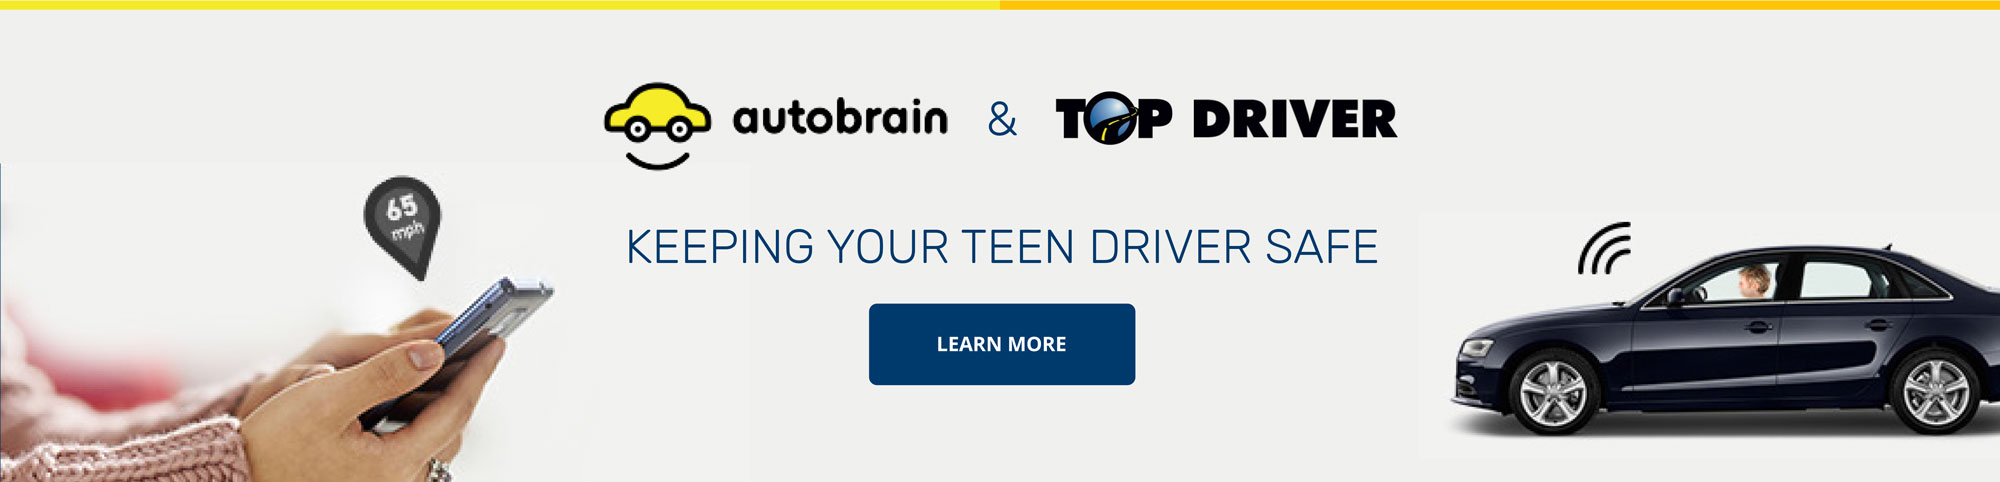 autobrain and topdriver